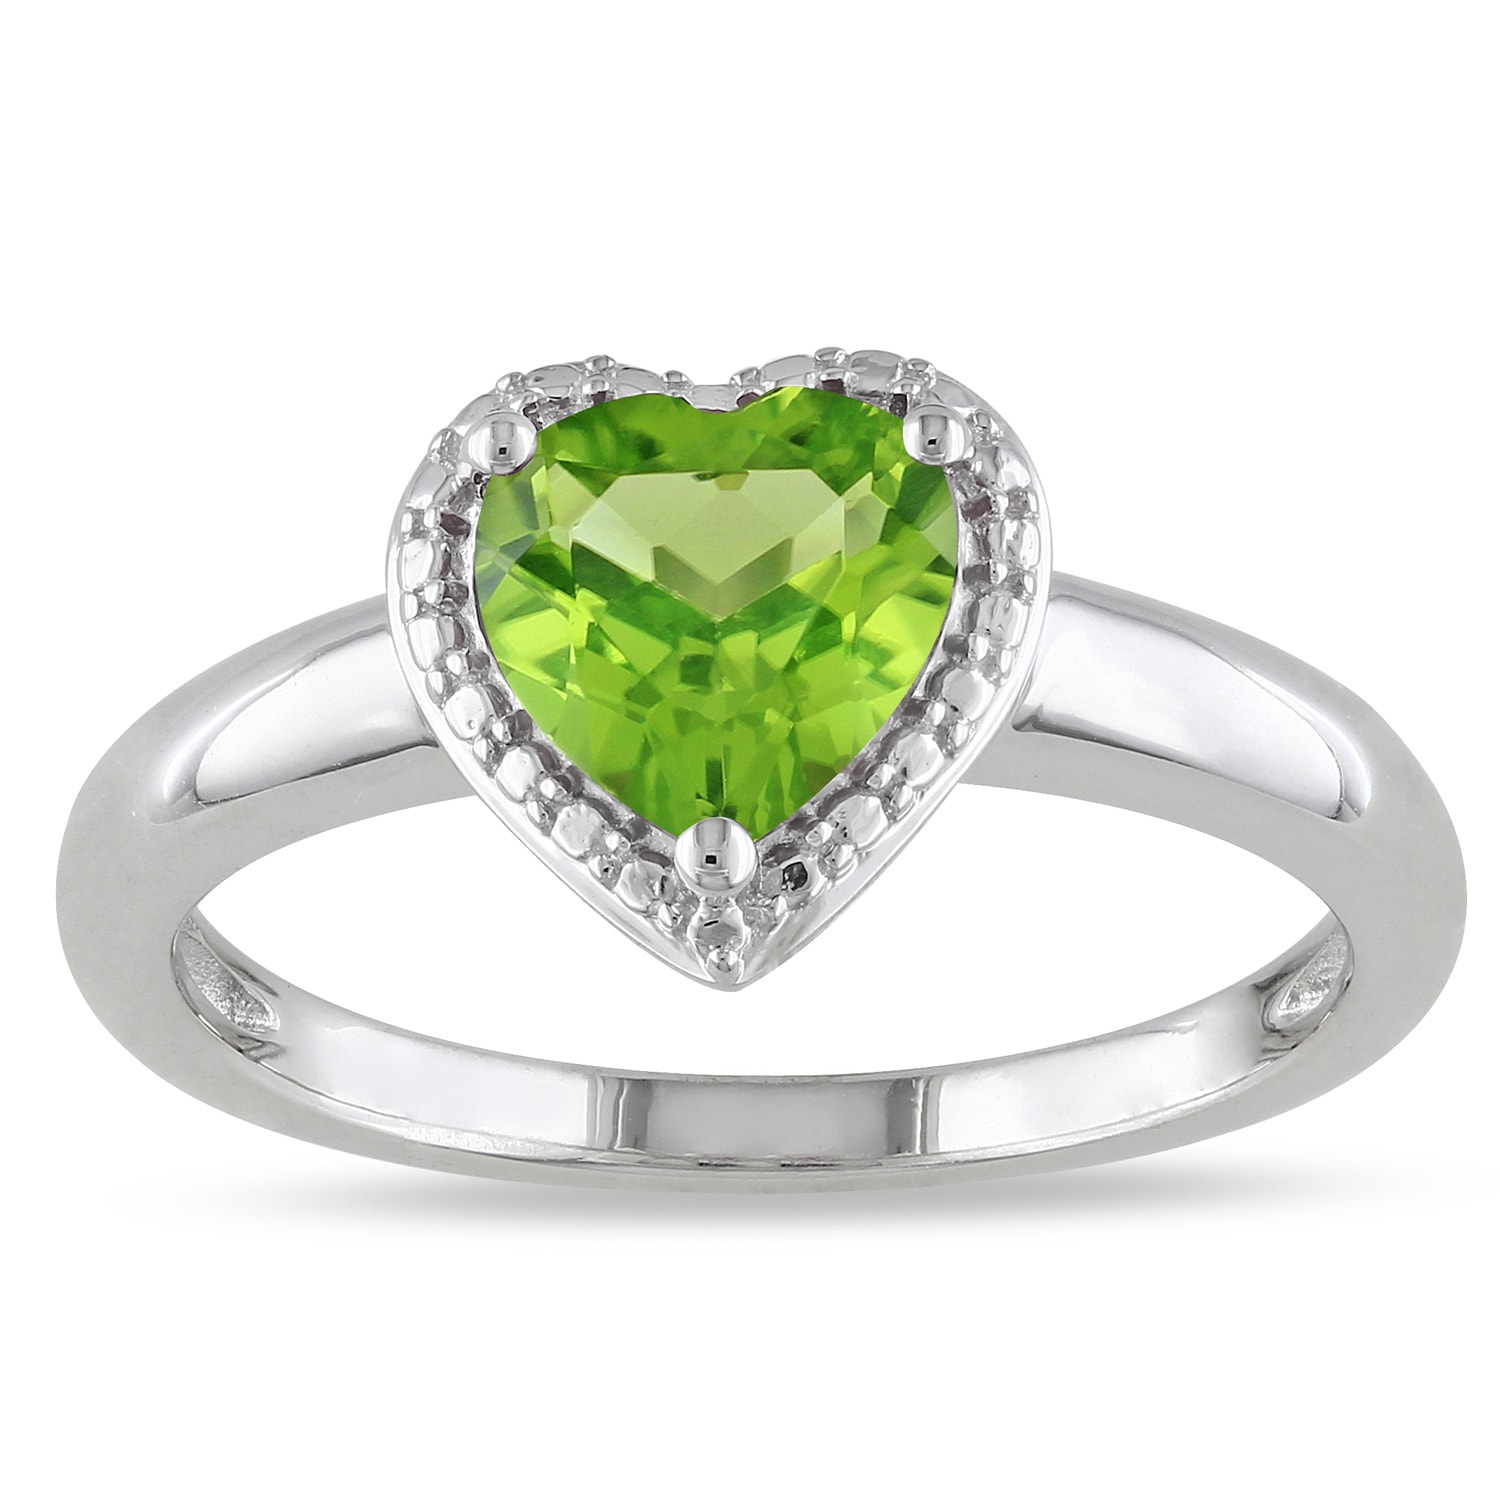 claddagh may dp com august amazon jewelry cz rings ring natural diamonds birthstone white with green gold engagement heart